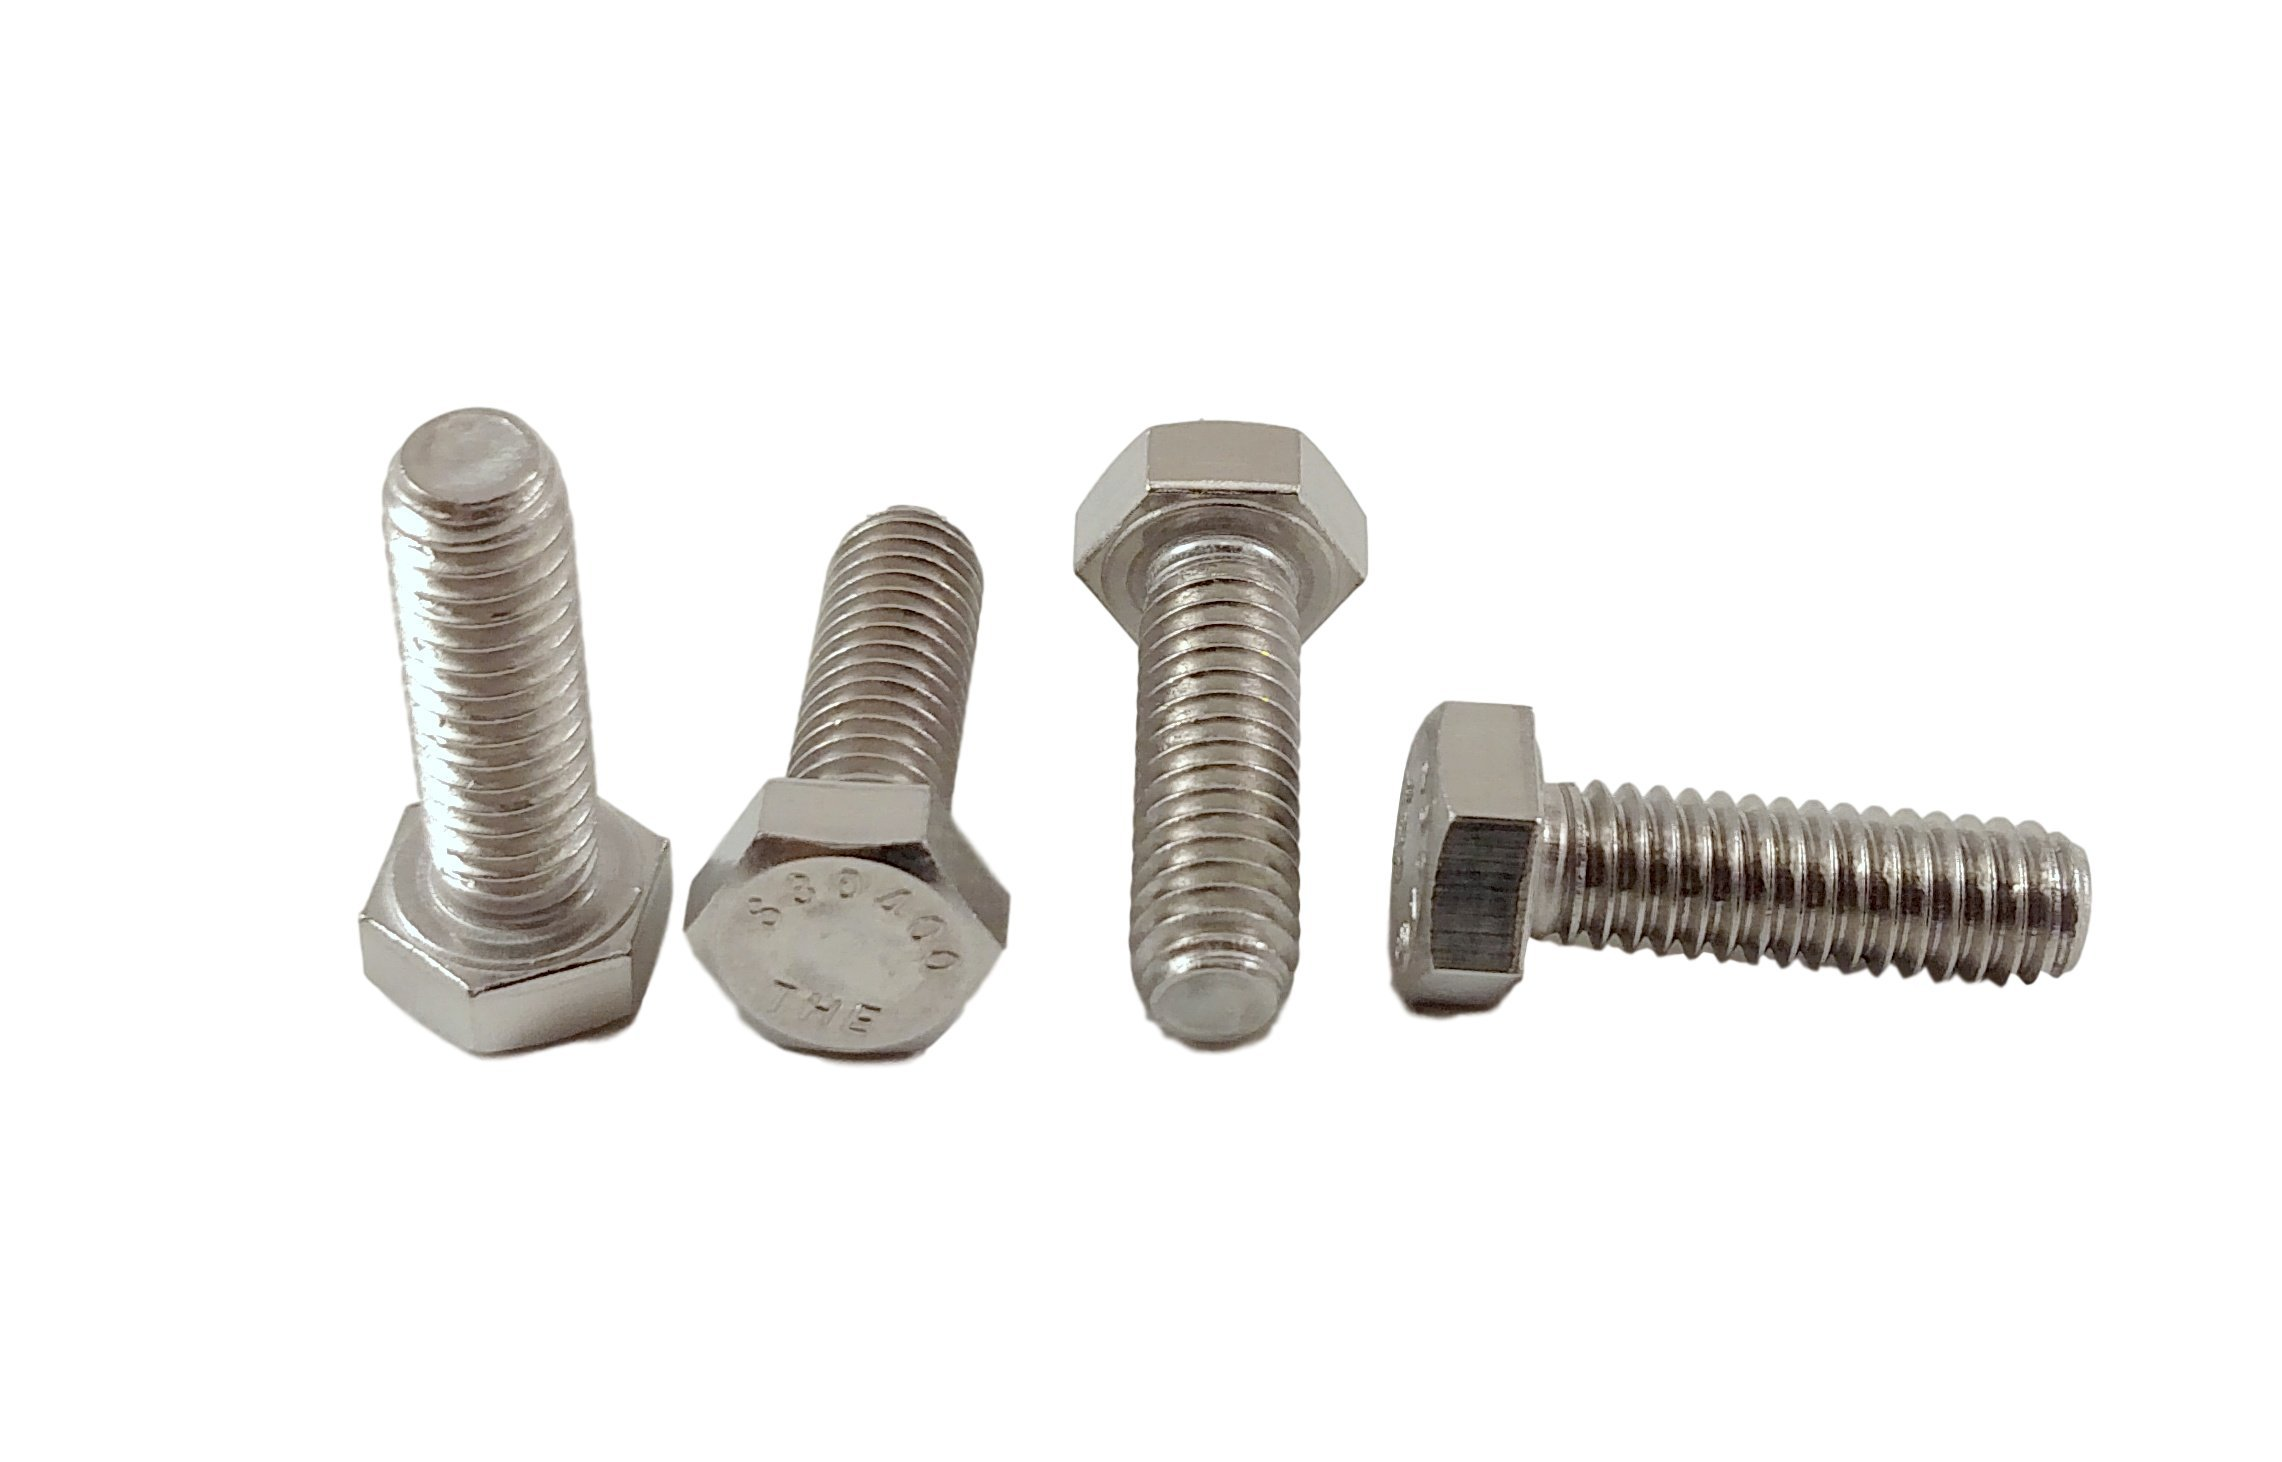 Stainless 5/16-18 X 1'' Hex Head Bolts (1/2'' to 4'' Length in Listing), 304 Stainless Steel (5/16-18x1''(50pcs))